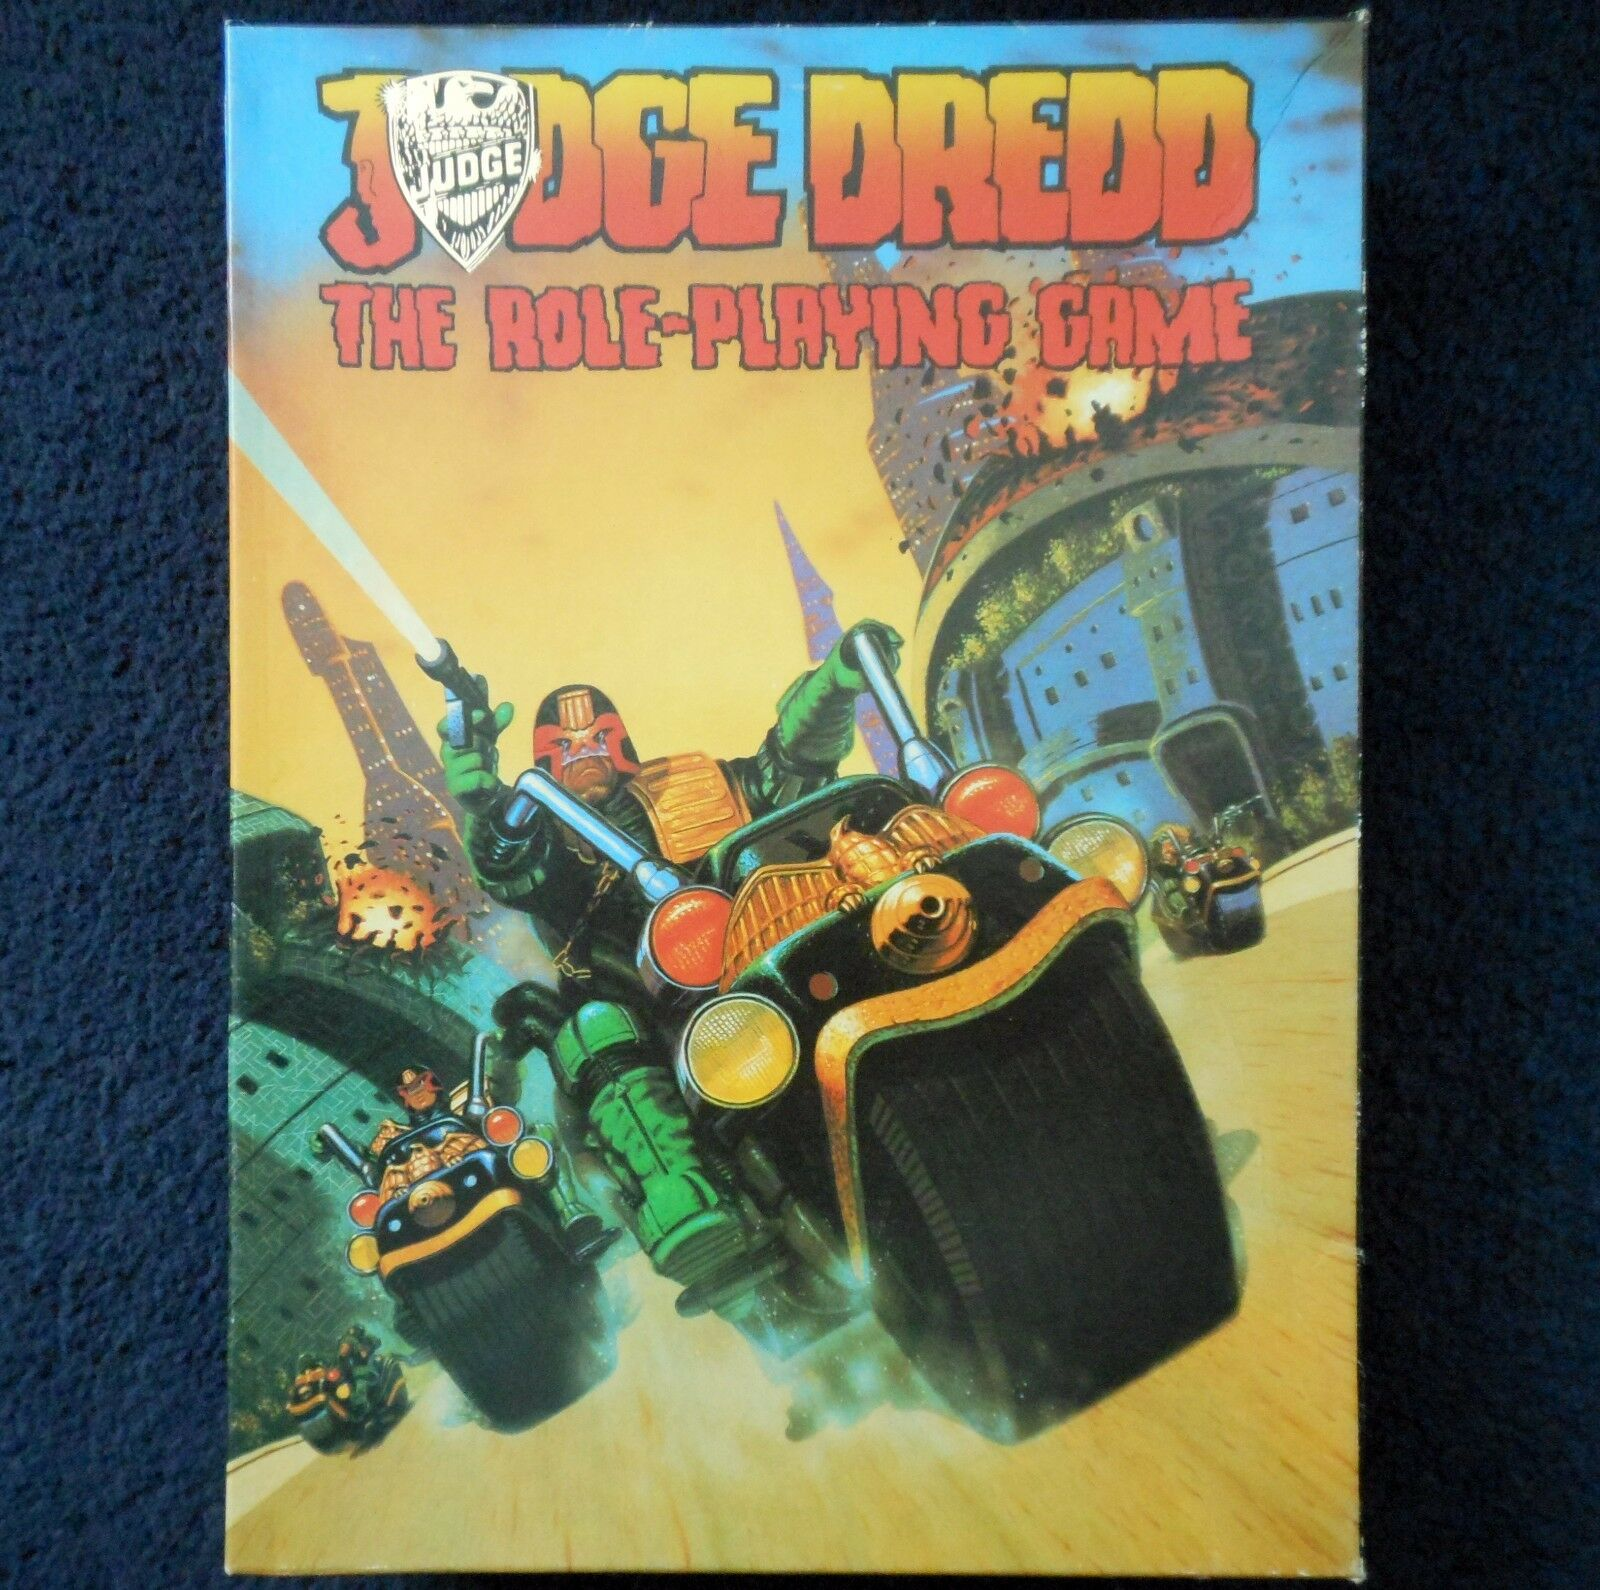 1985 juego de juego de rol Judge Drojod la games workshop 2000 ad Sci Fi RPG libro GW